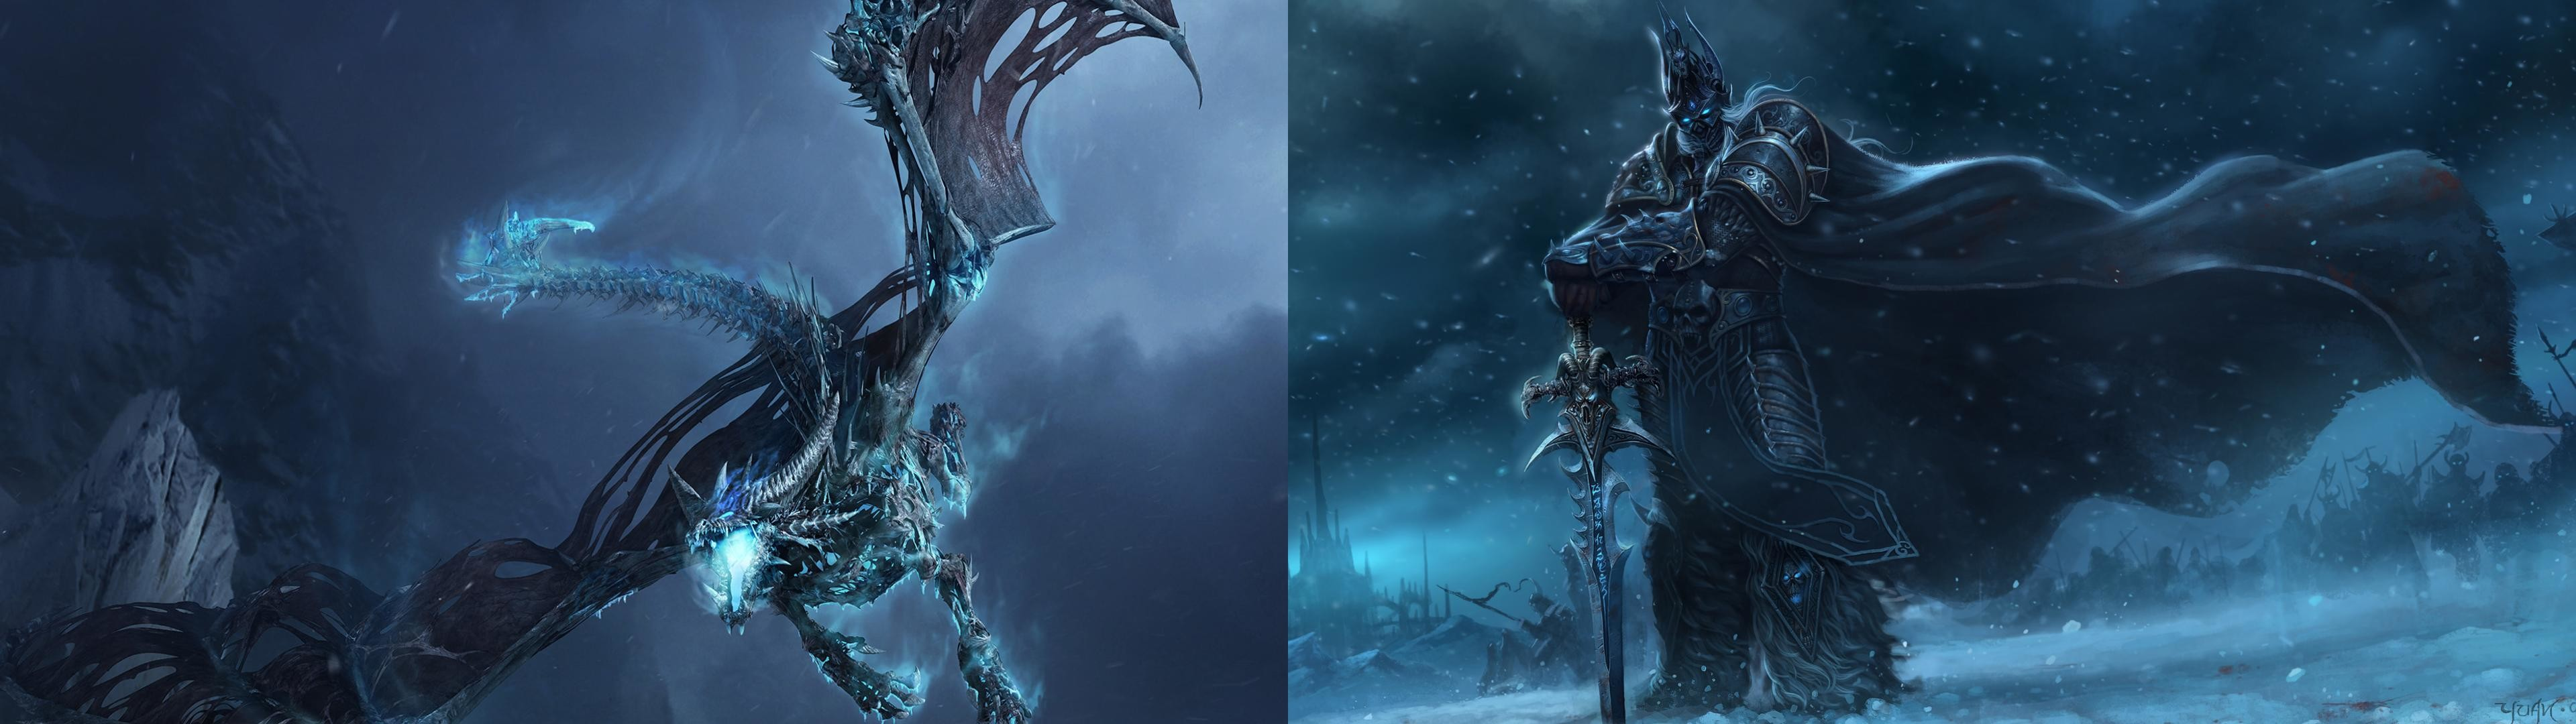 World Of Warcraft Dual Monitor Wallpapers – Wallpaper Zone